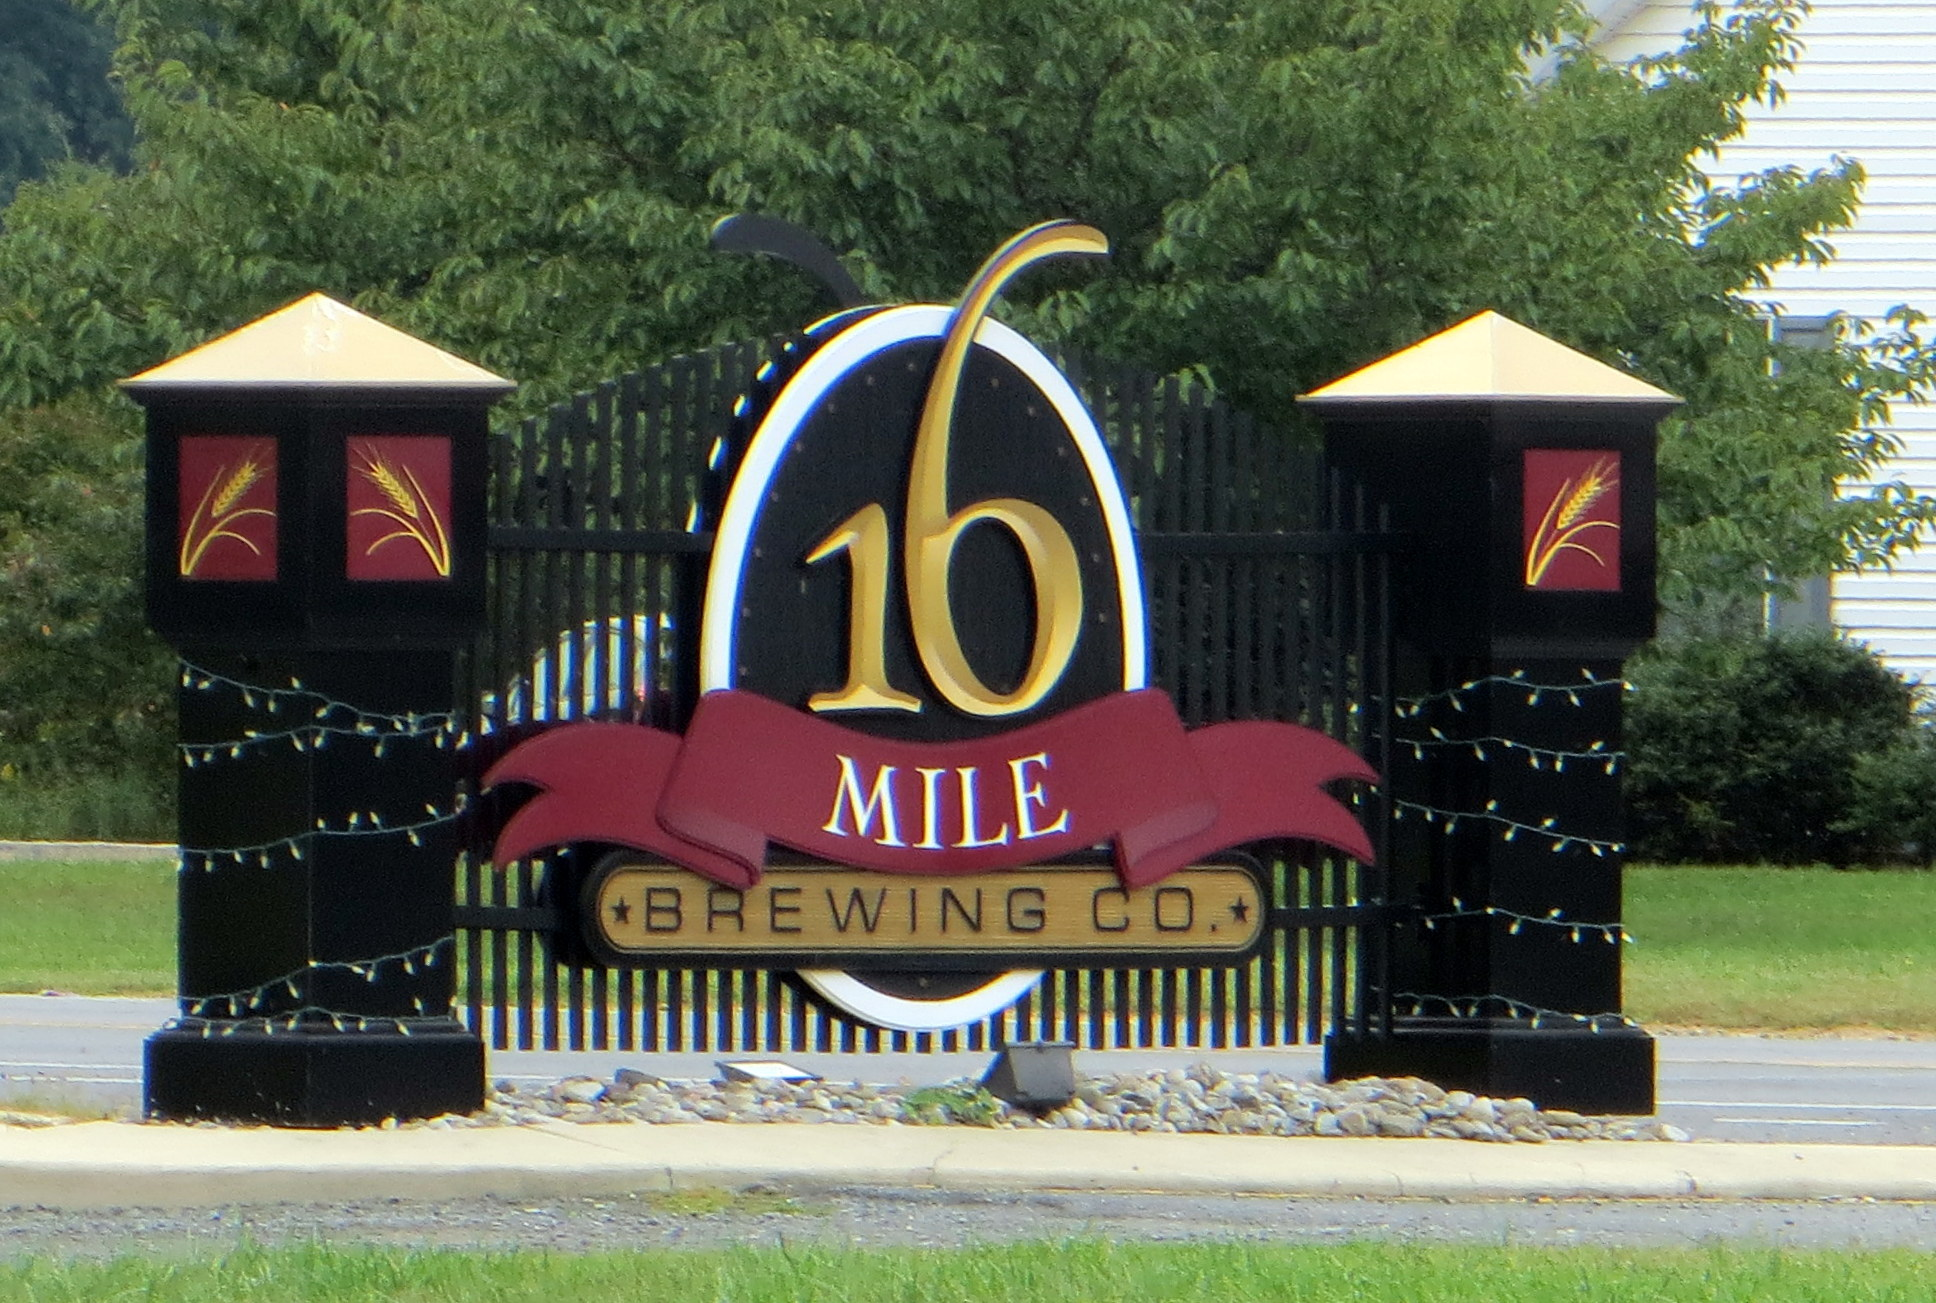 16 Mile Brewing Company – Georgetown, DE